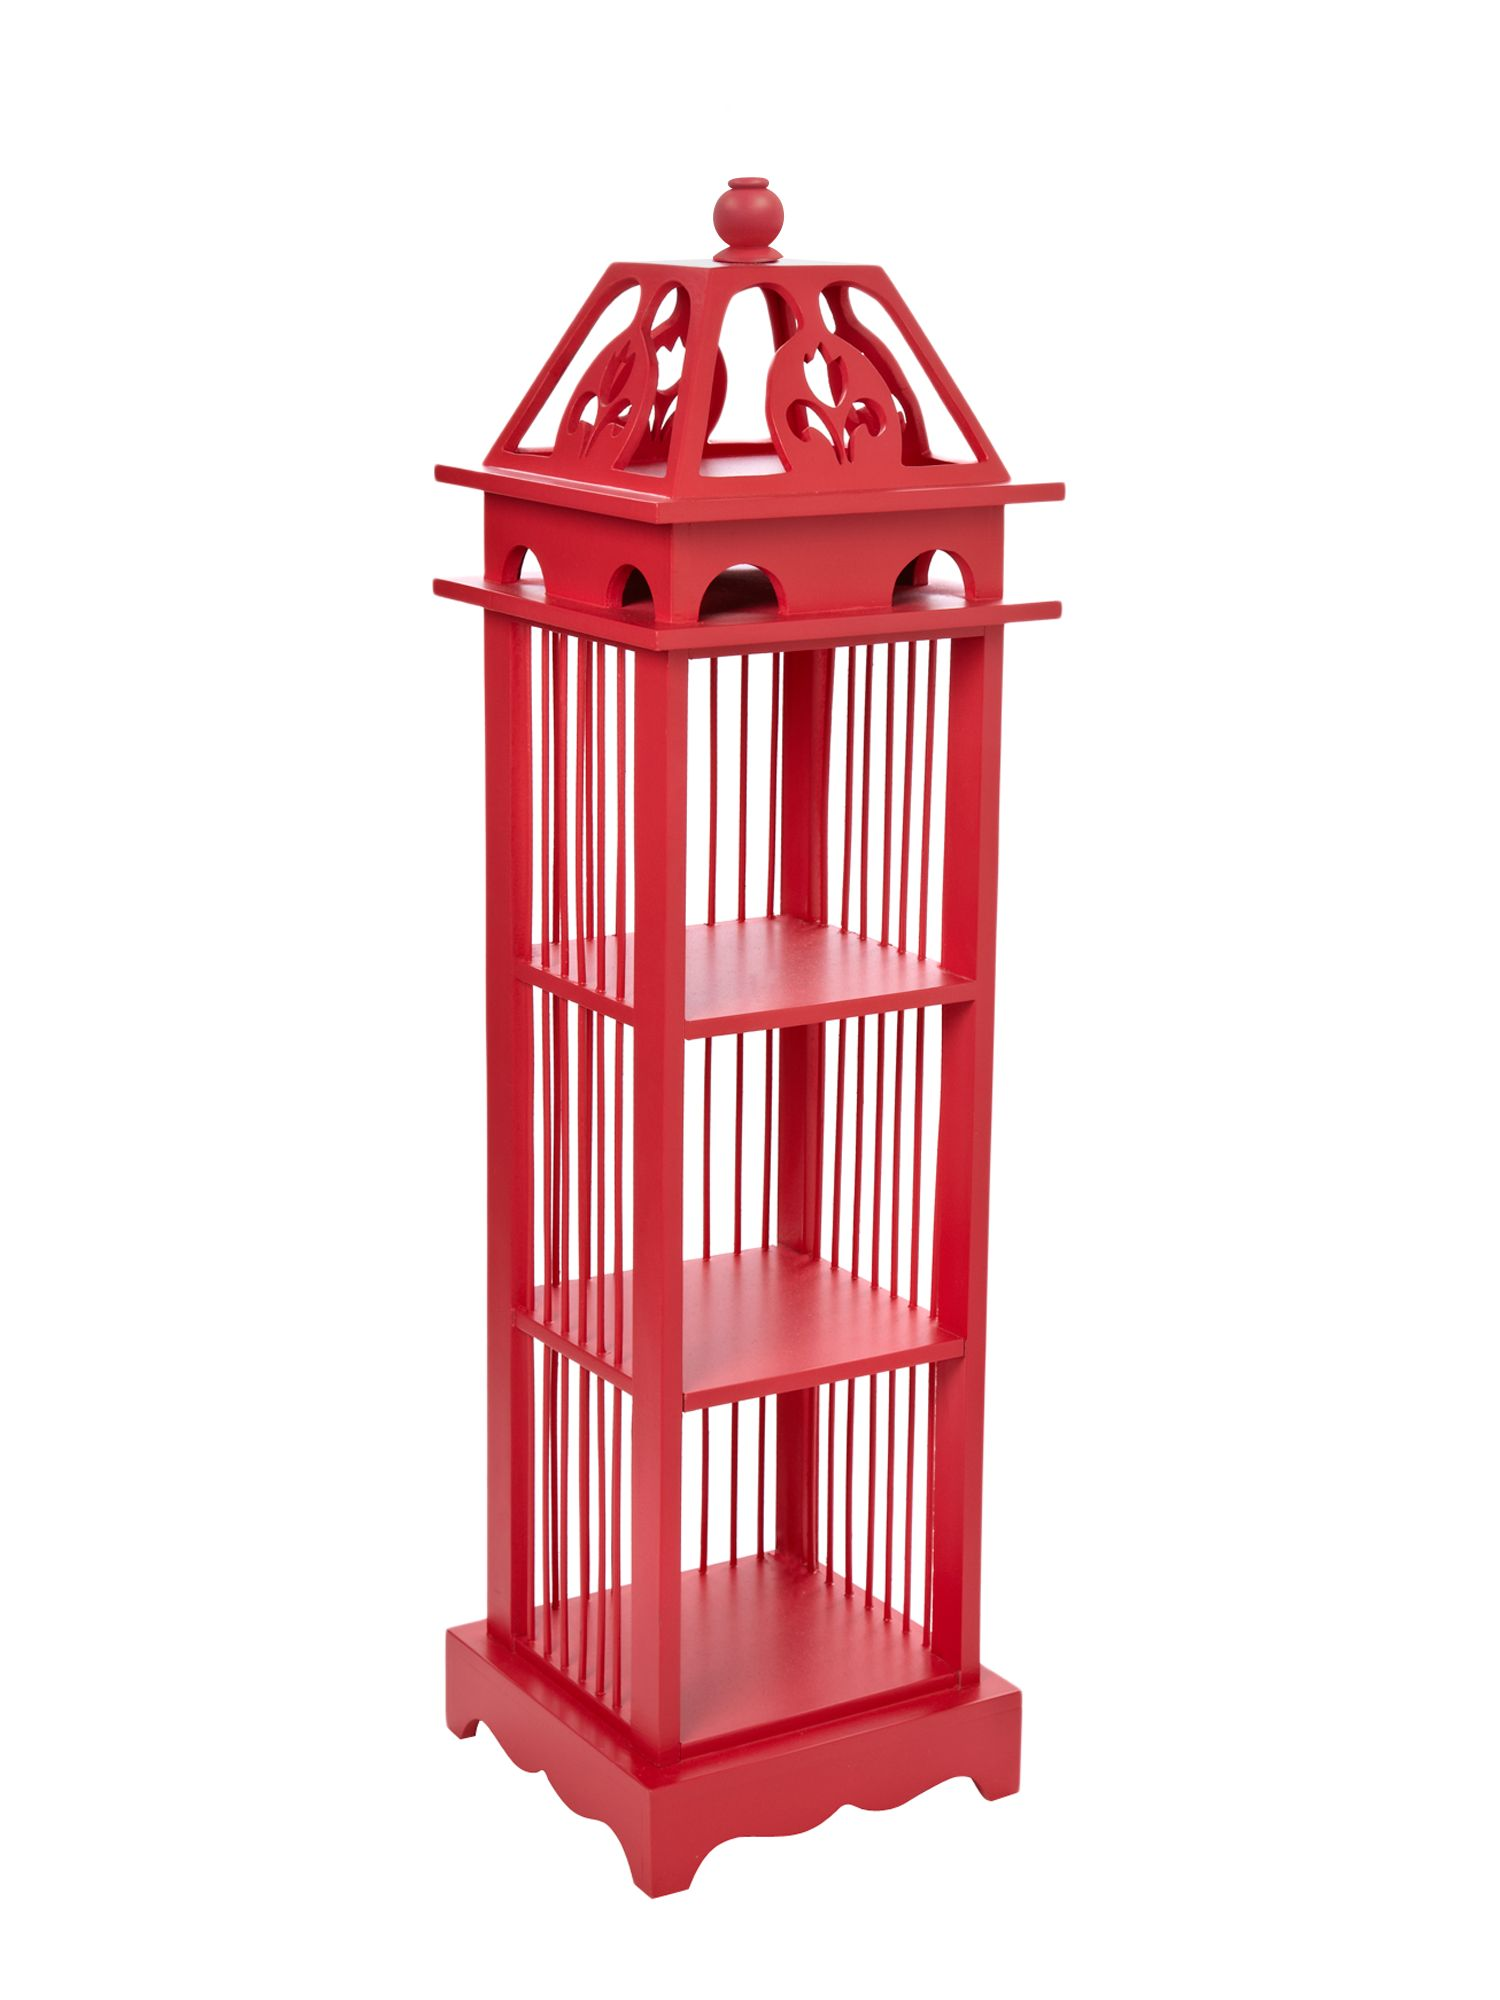 Birdcage storage unit